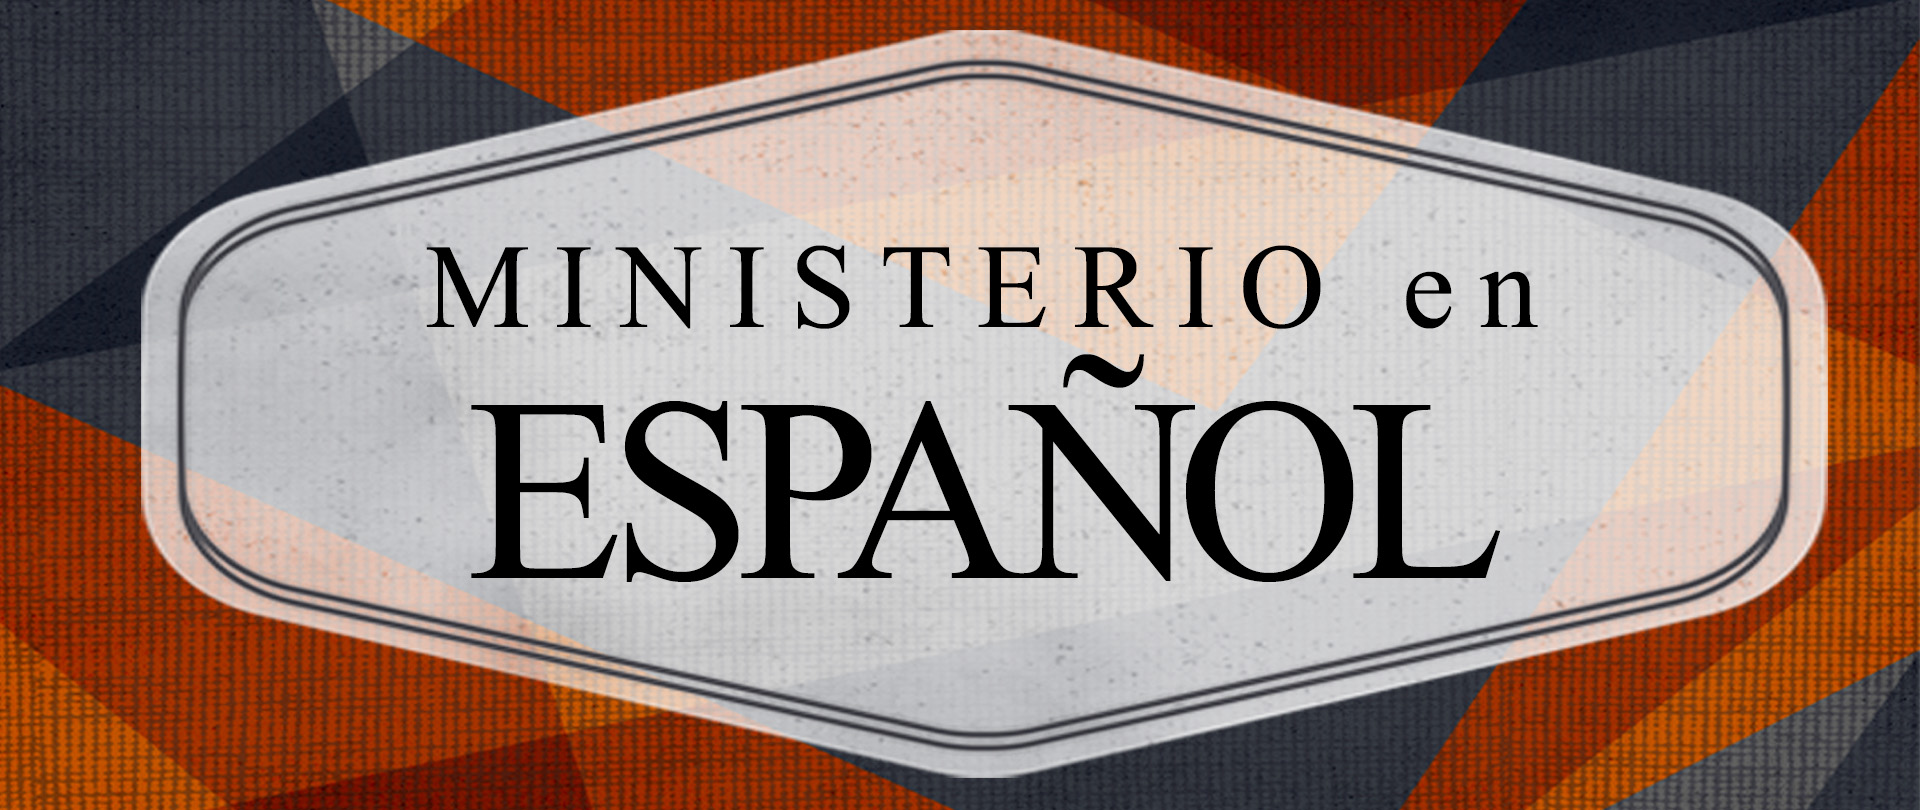 Spanish Ministry